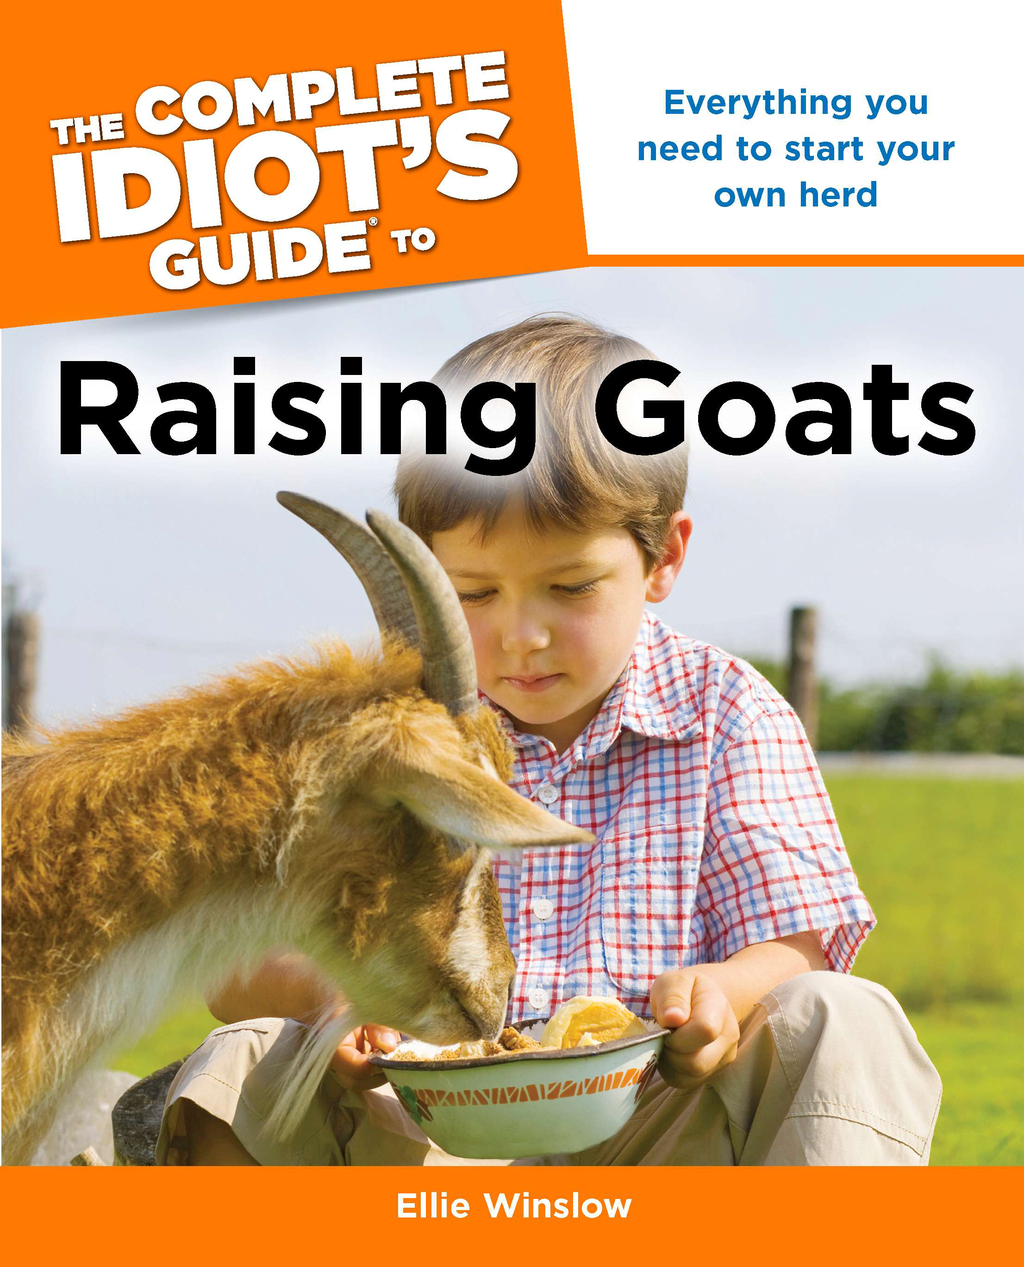 The Complete Idiot's Guide to Raising Goats By: Ellie Winslow